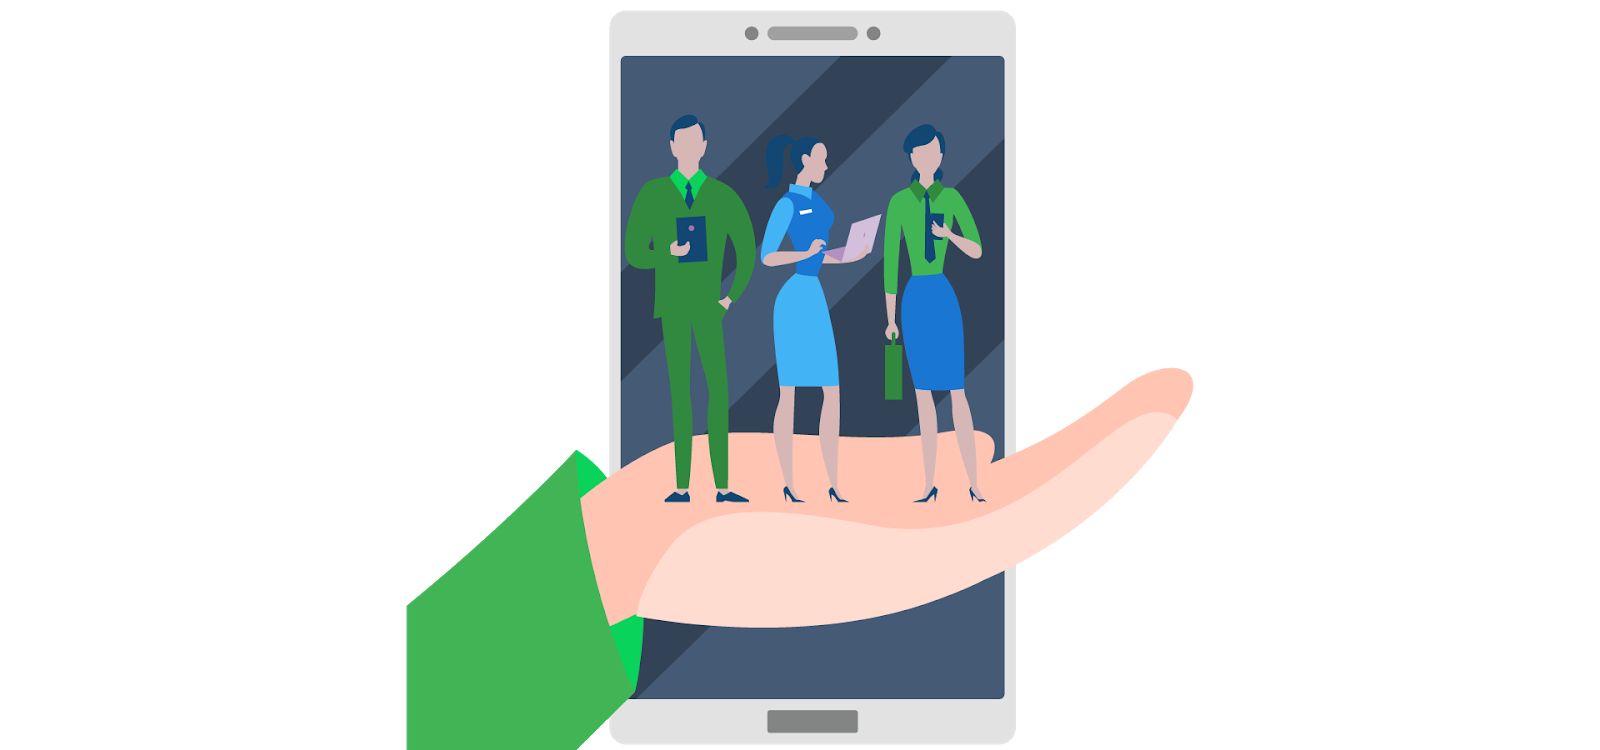 corporate workers and mobile devices montage illustration